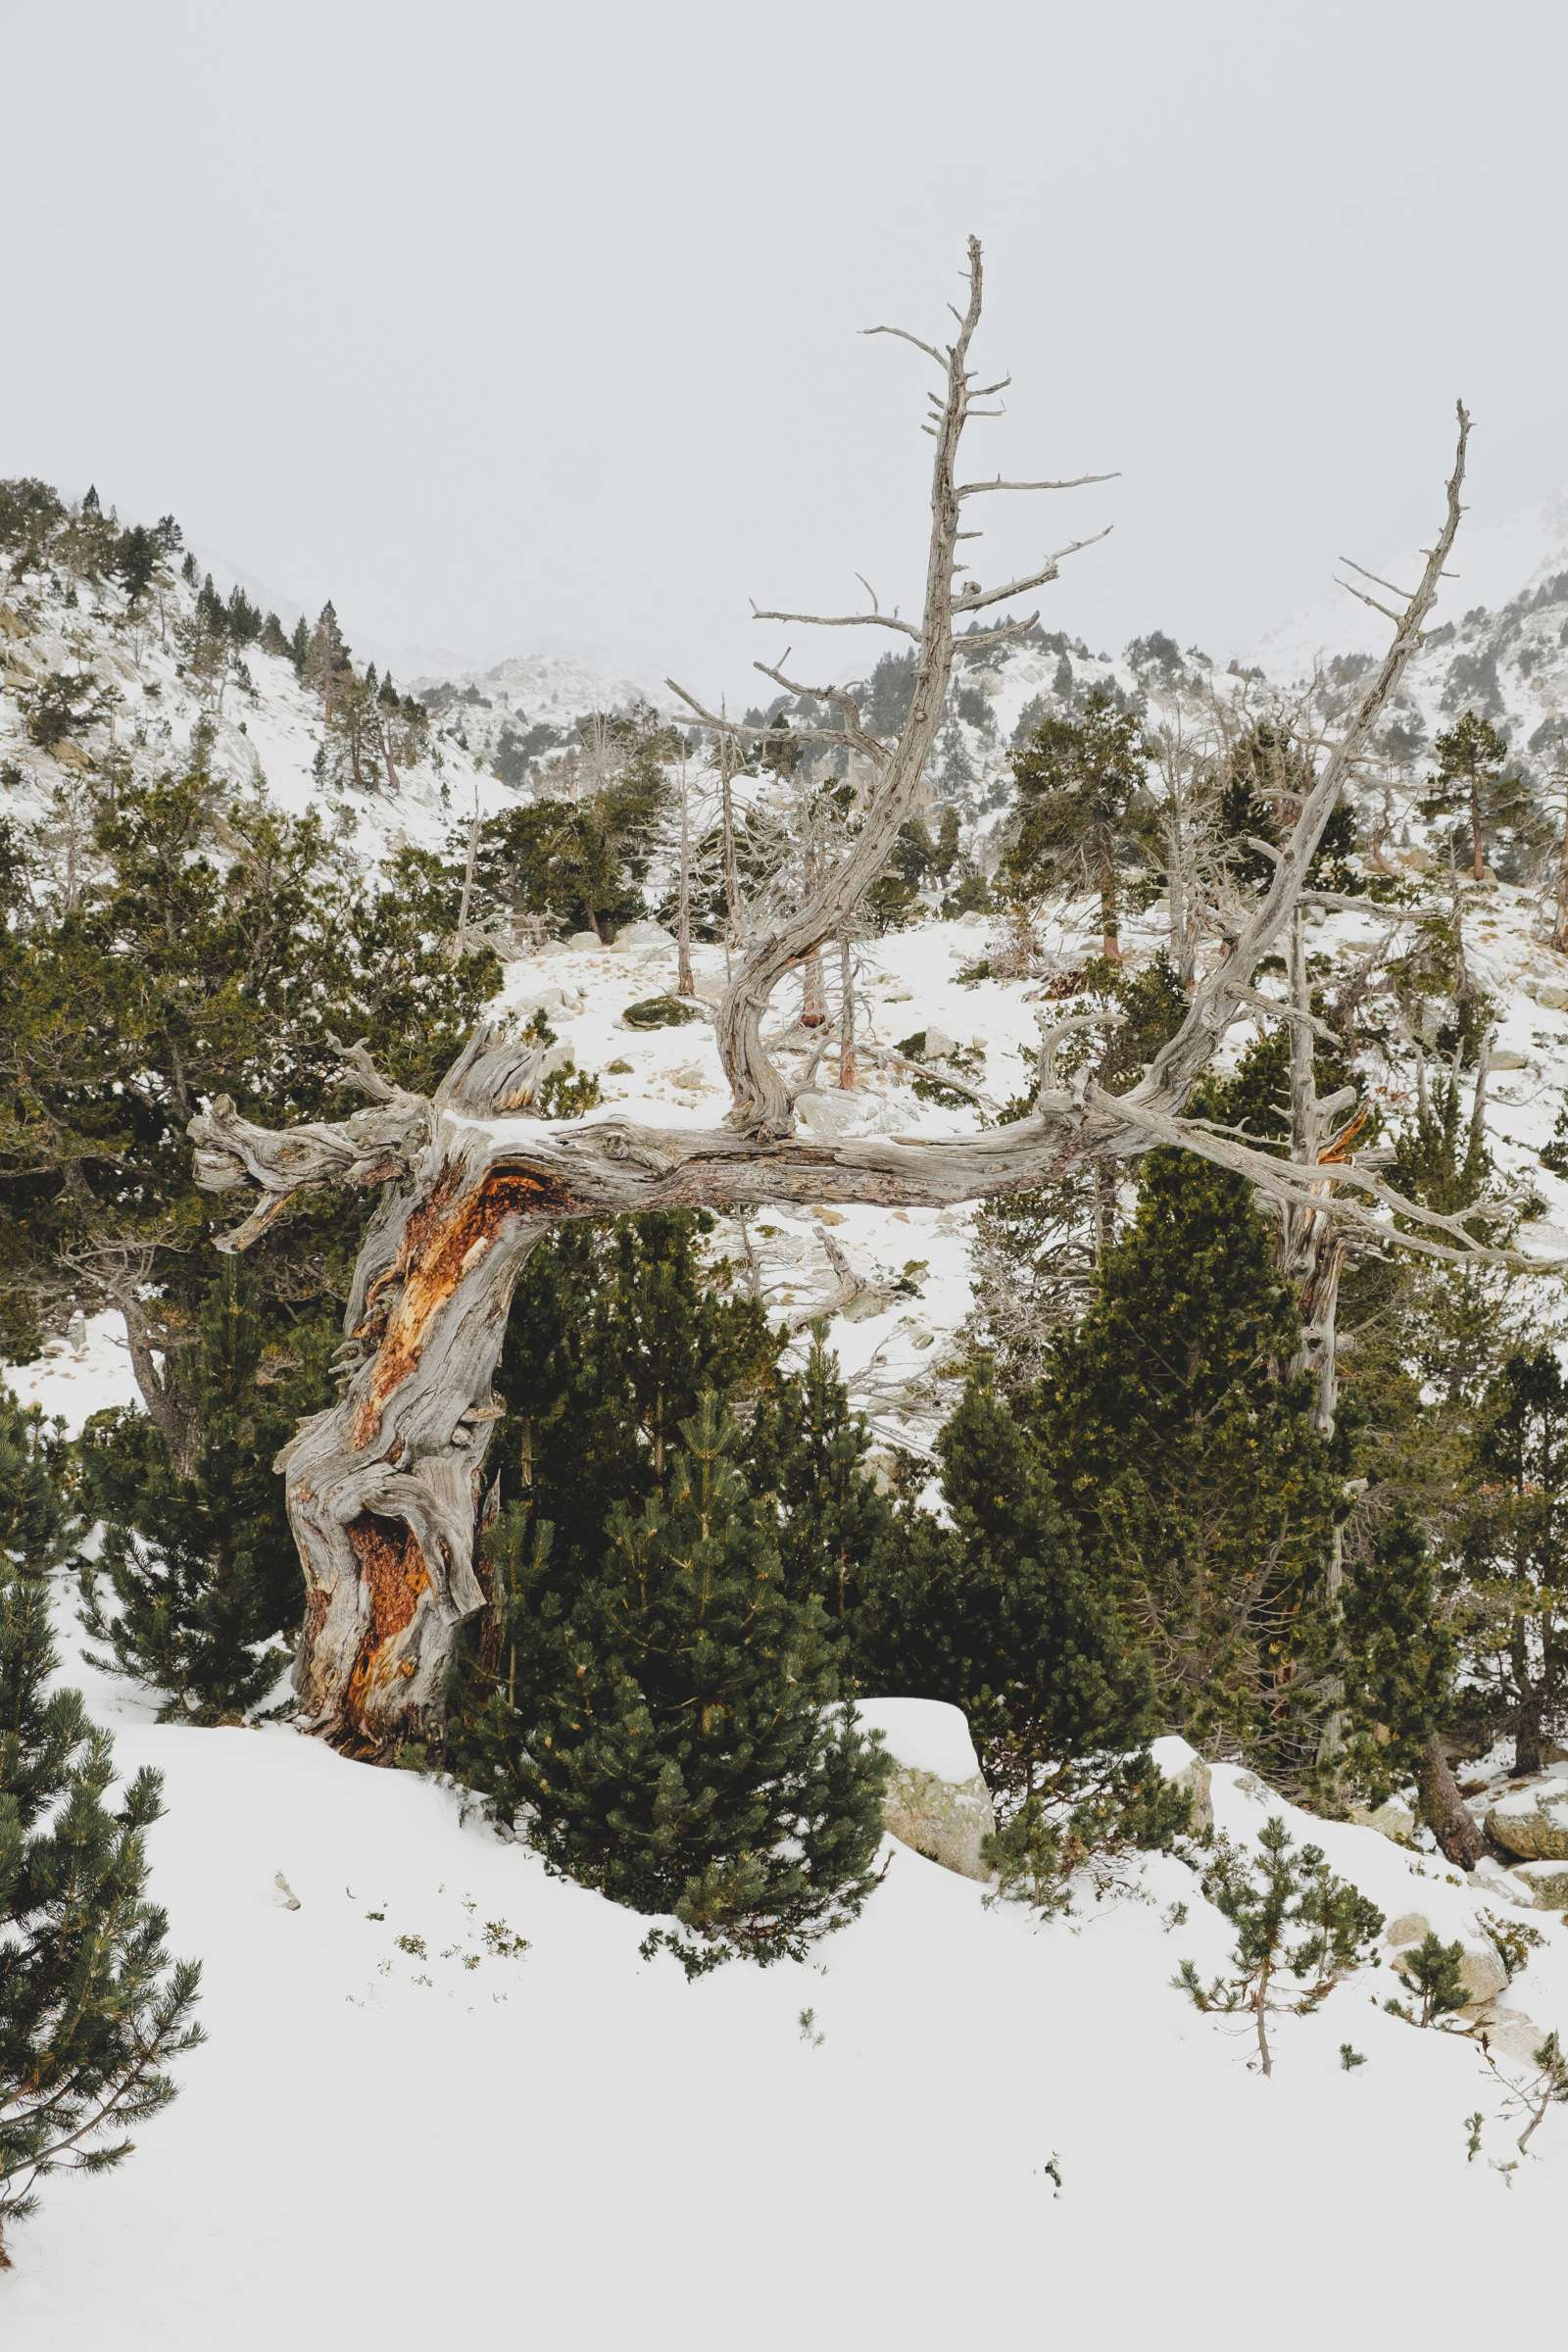 Scorched tree in the snow